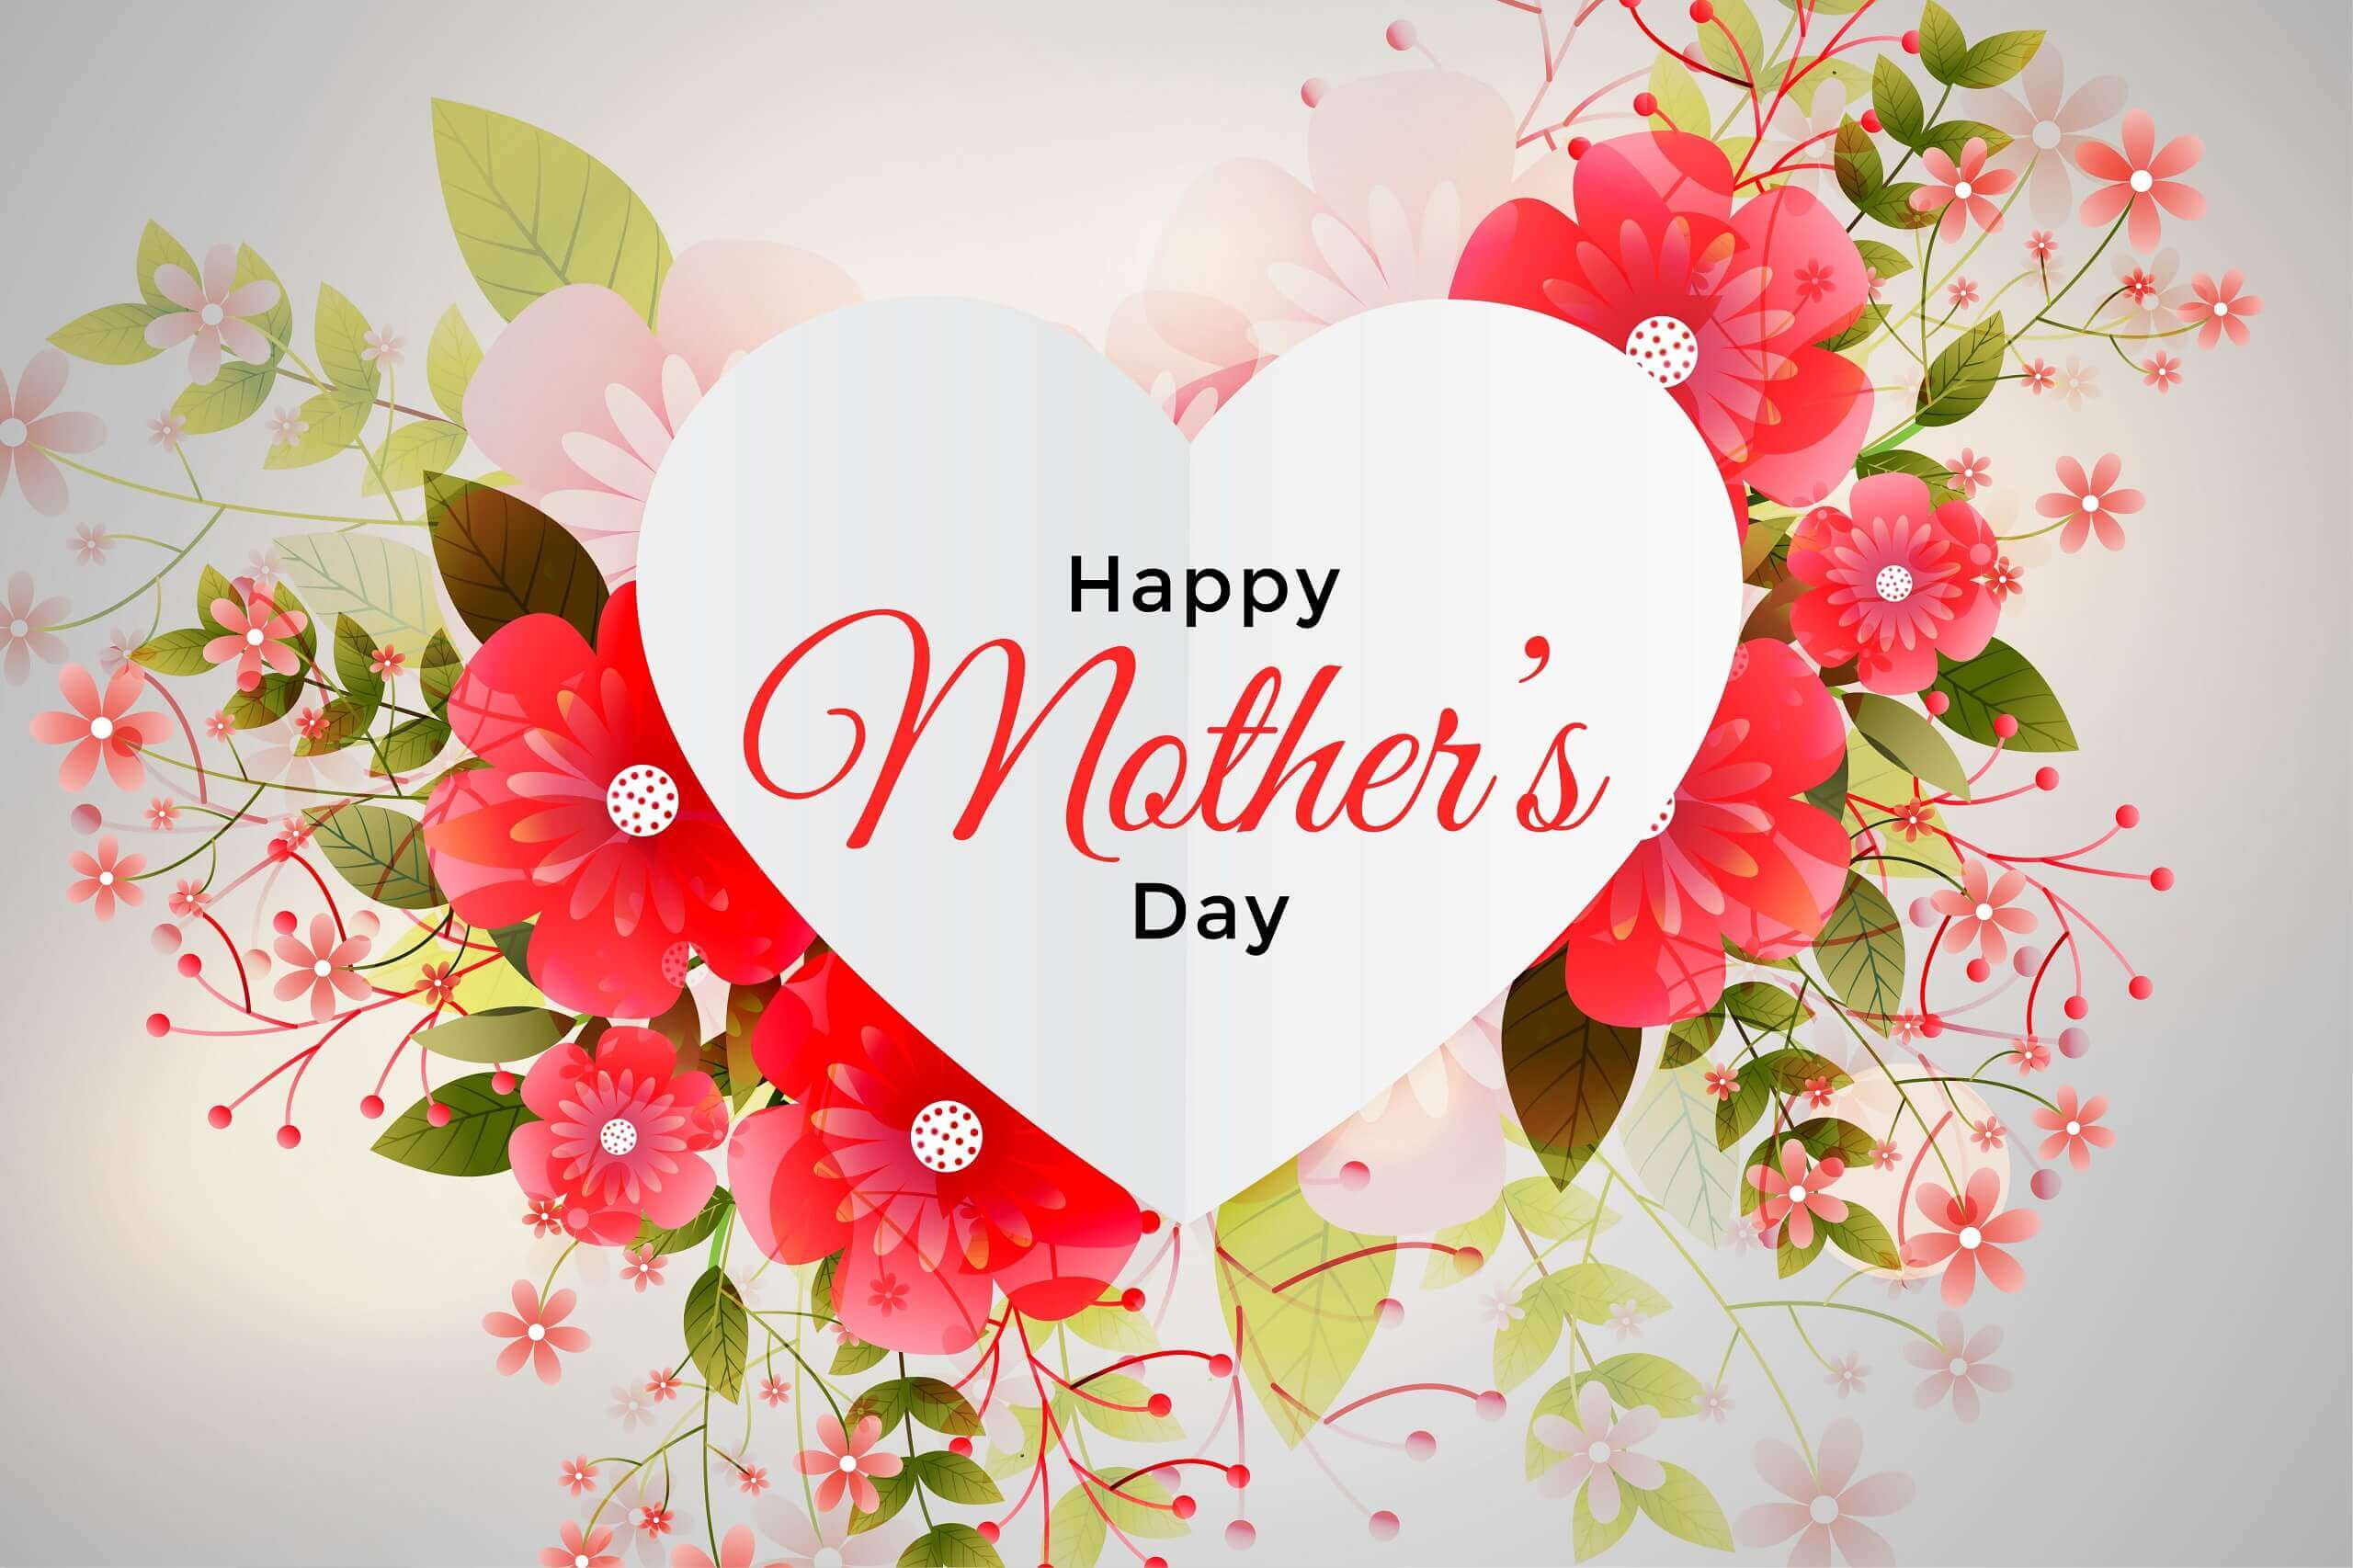 Happy Mothers Day photo for digital marketing and businesses